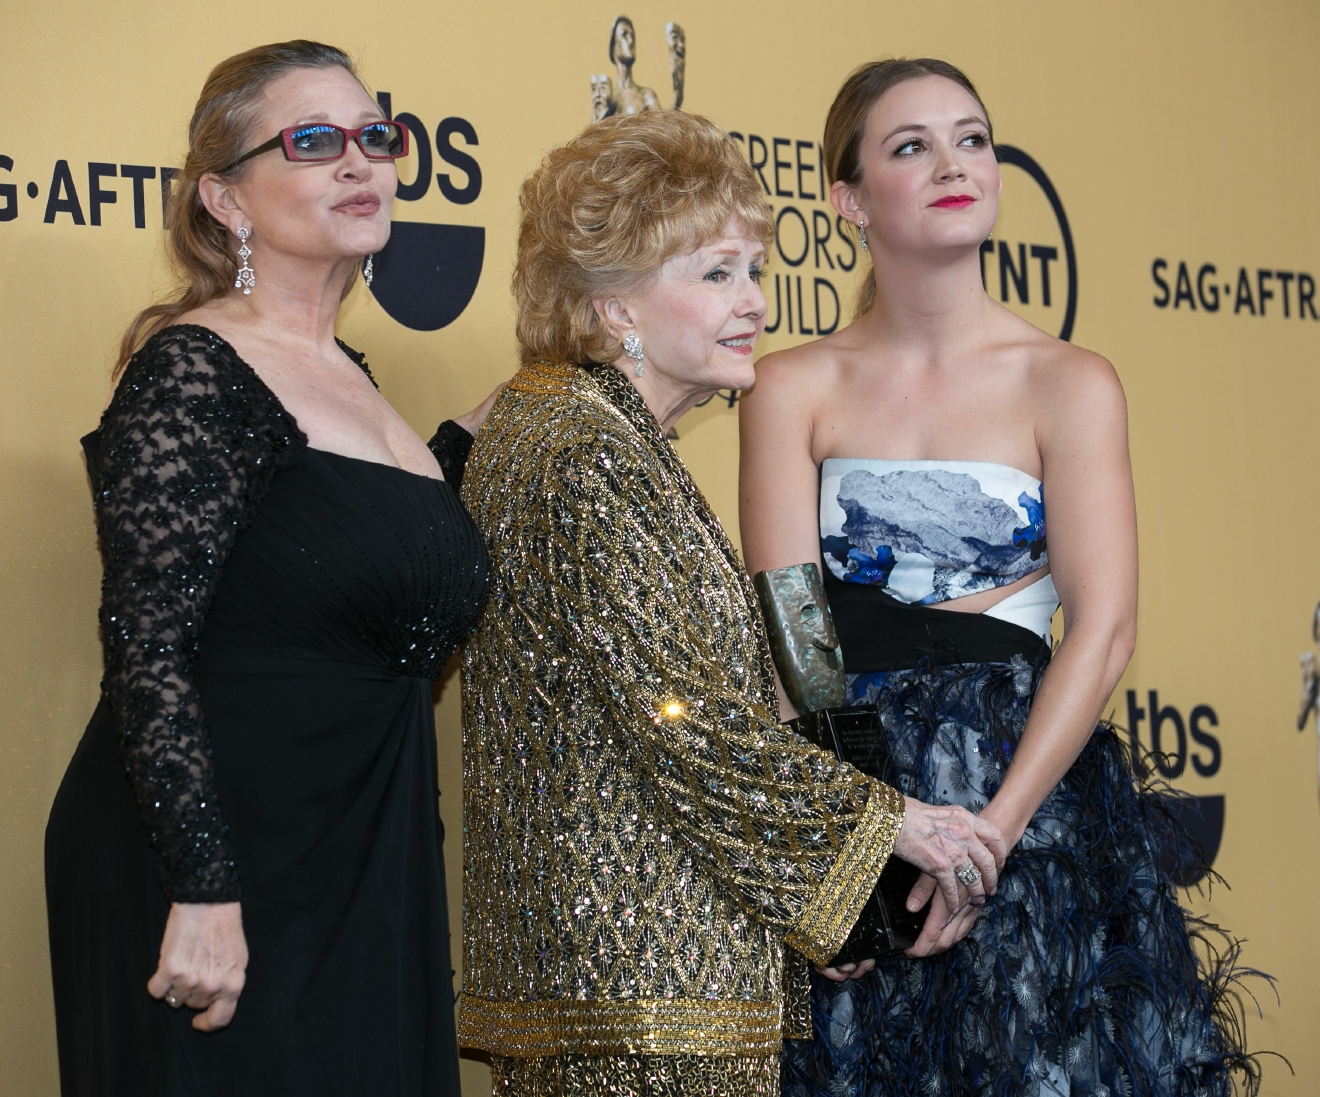 Celebrities attend 21st Annual SAG Awards - Press Room at Los Angeles Shrine Exposition Center.                                    Featuring: Carrie Fisher, Debbie Reynolds, Billie Catherine Lourd                  Where: Los Angeles, California, United States                  When: 22 Jan 2015                  Credit: Brian To/WENN.com